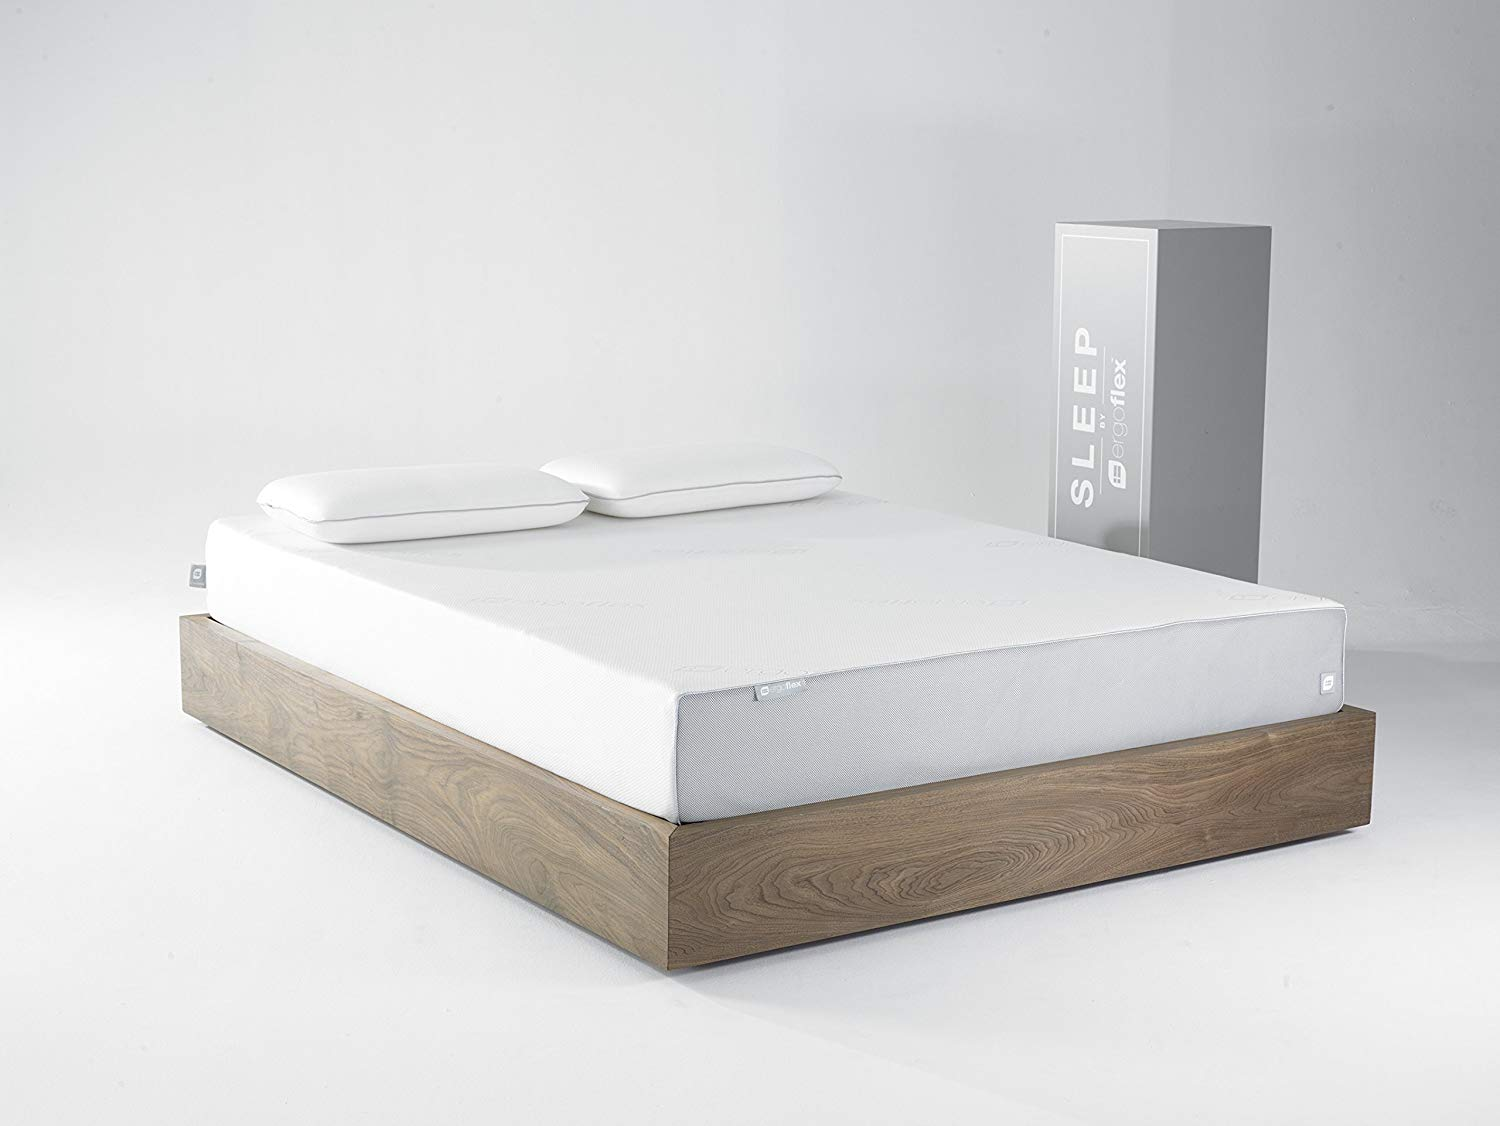 ergoflex mattress review